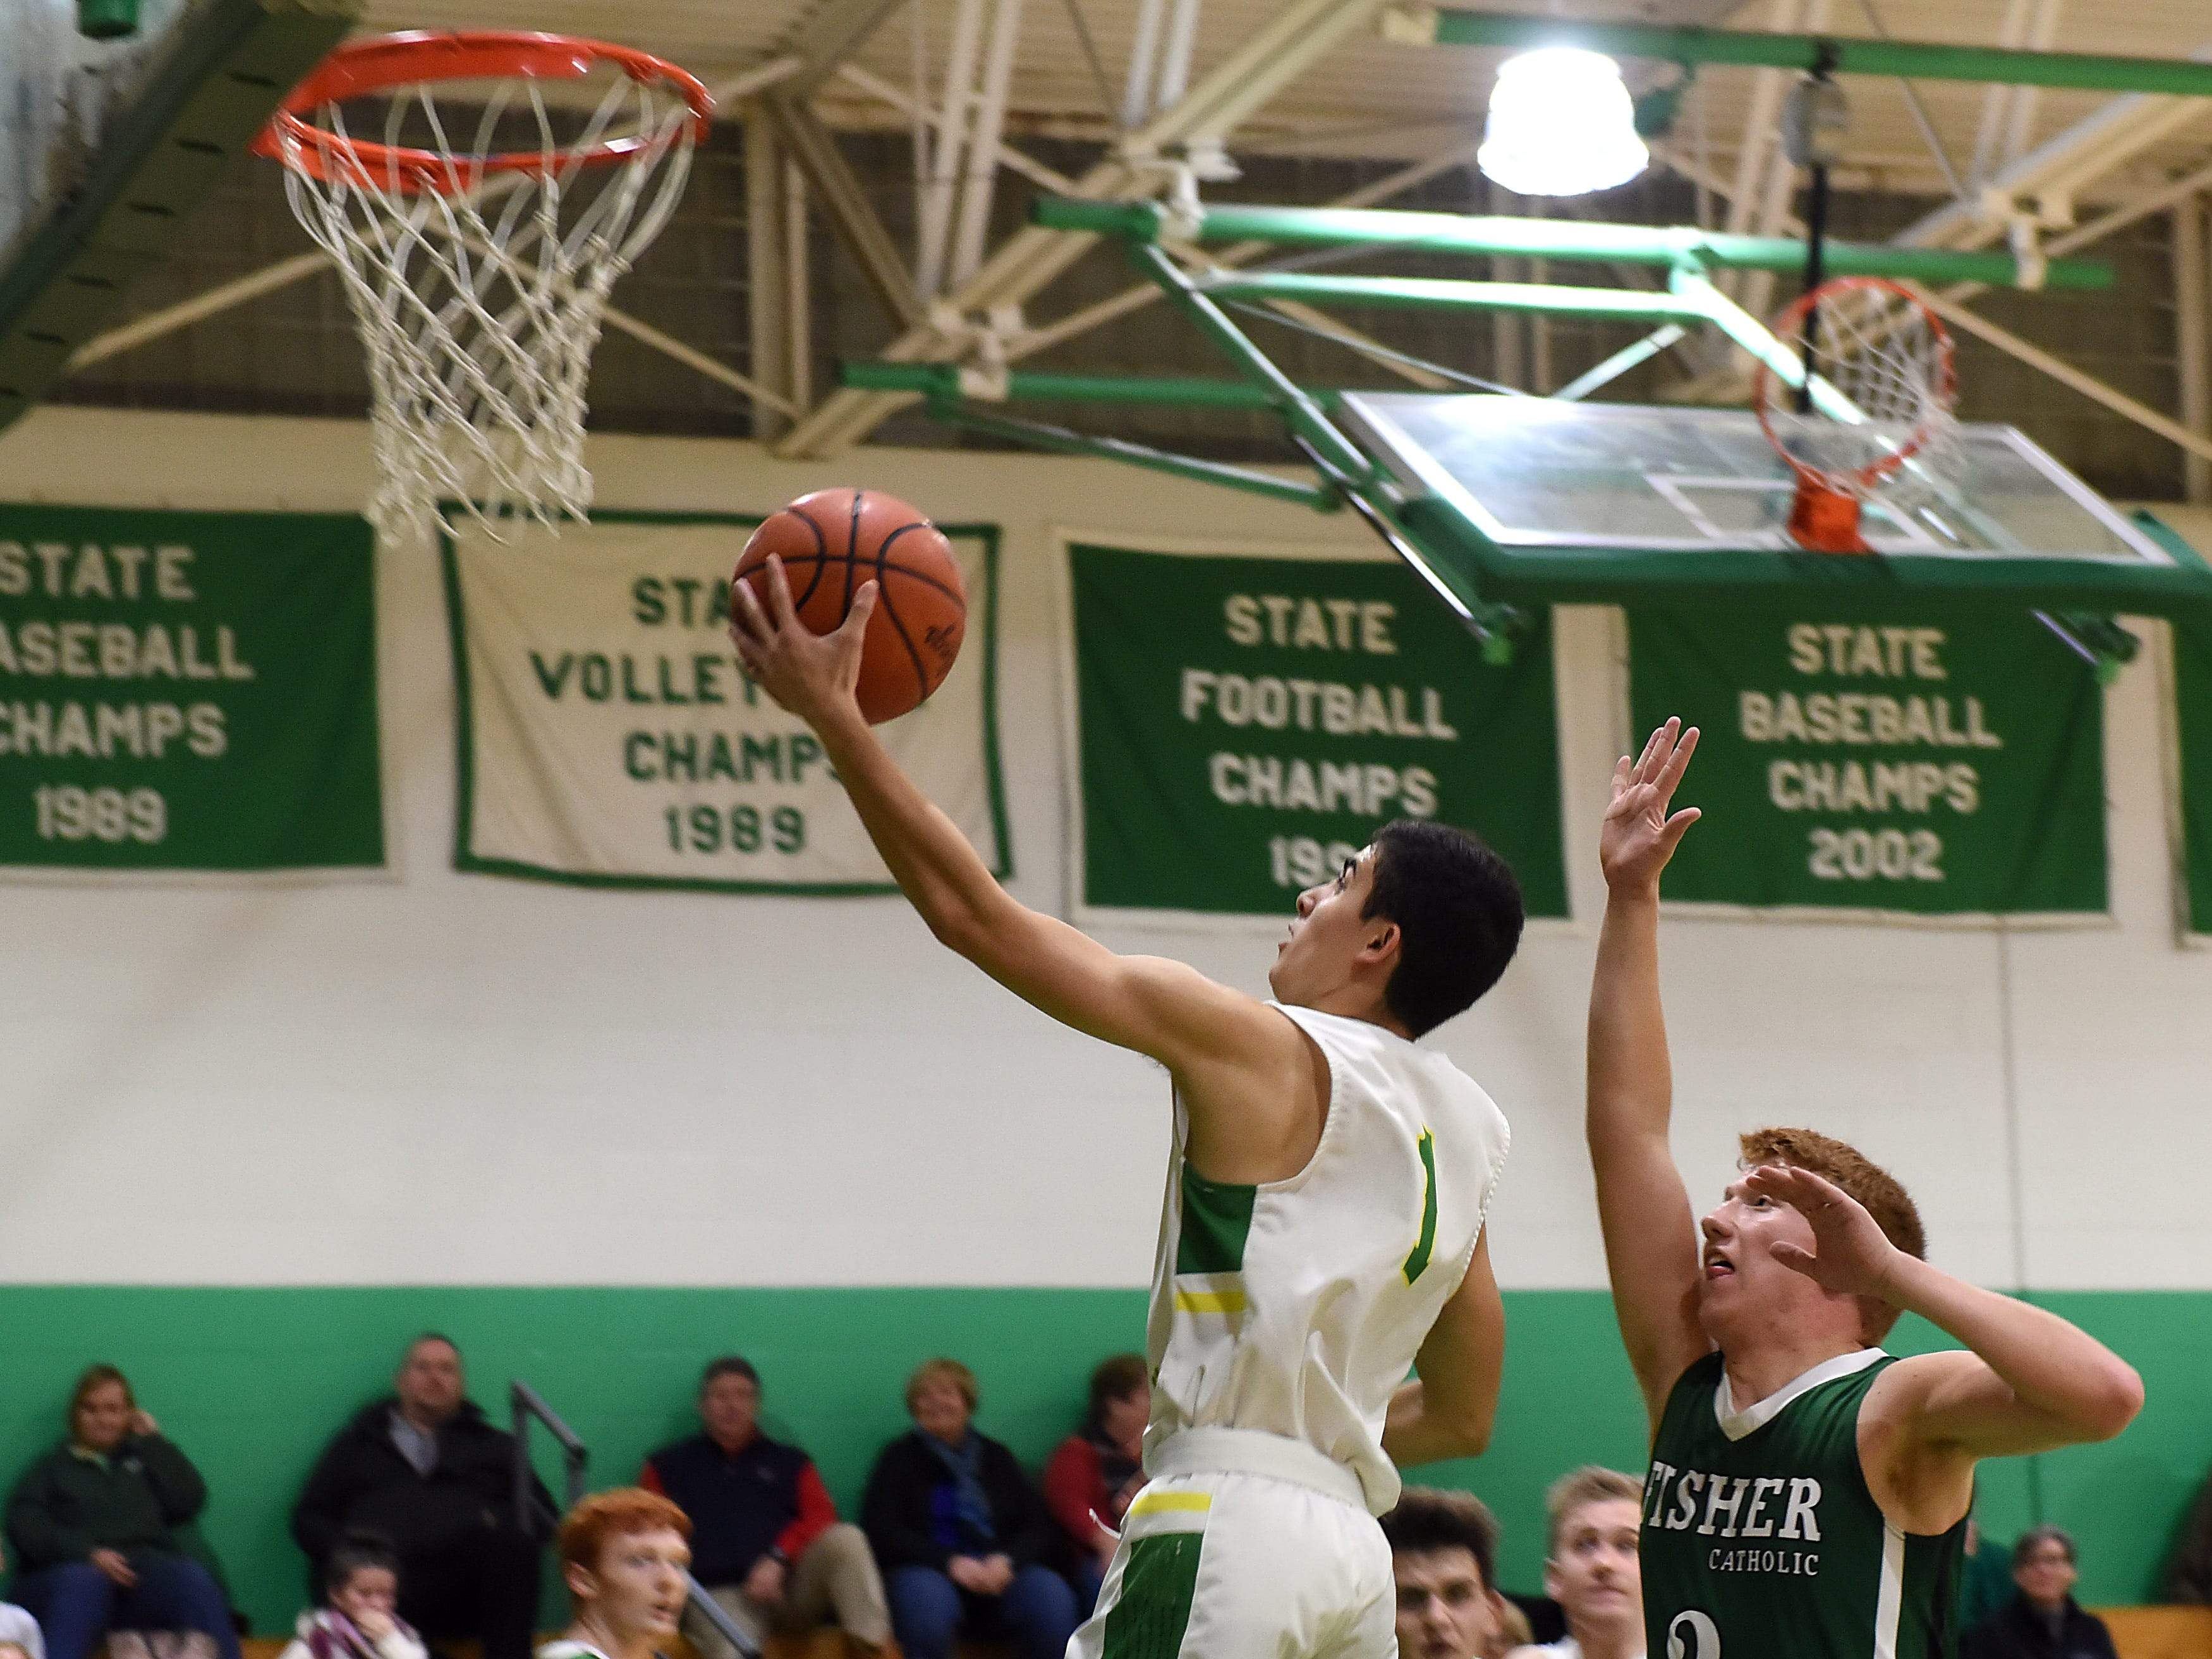 Newark Catholic senior Dow Jones goes up for a layup after breaking past Fisher Catholic senior Carter Brady during Monday night's game at Newark Catholic. The Irish won with a buzzer-beating 3-pointer defeating the Green Wave 52-49.